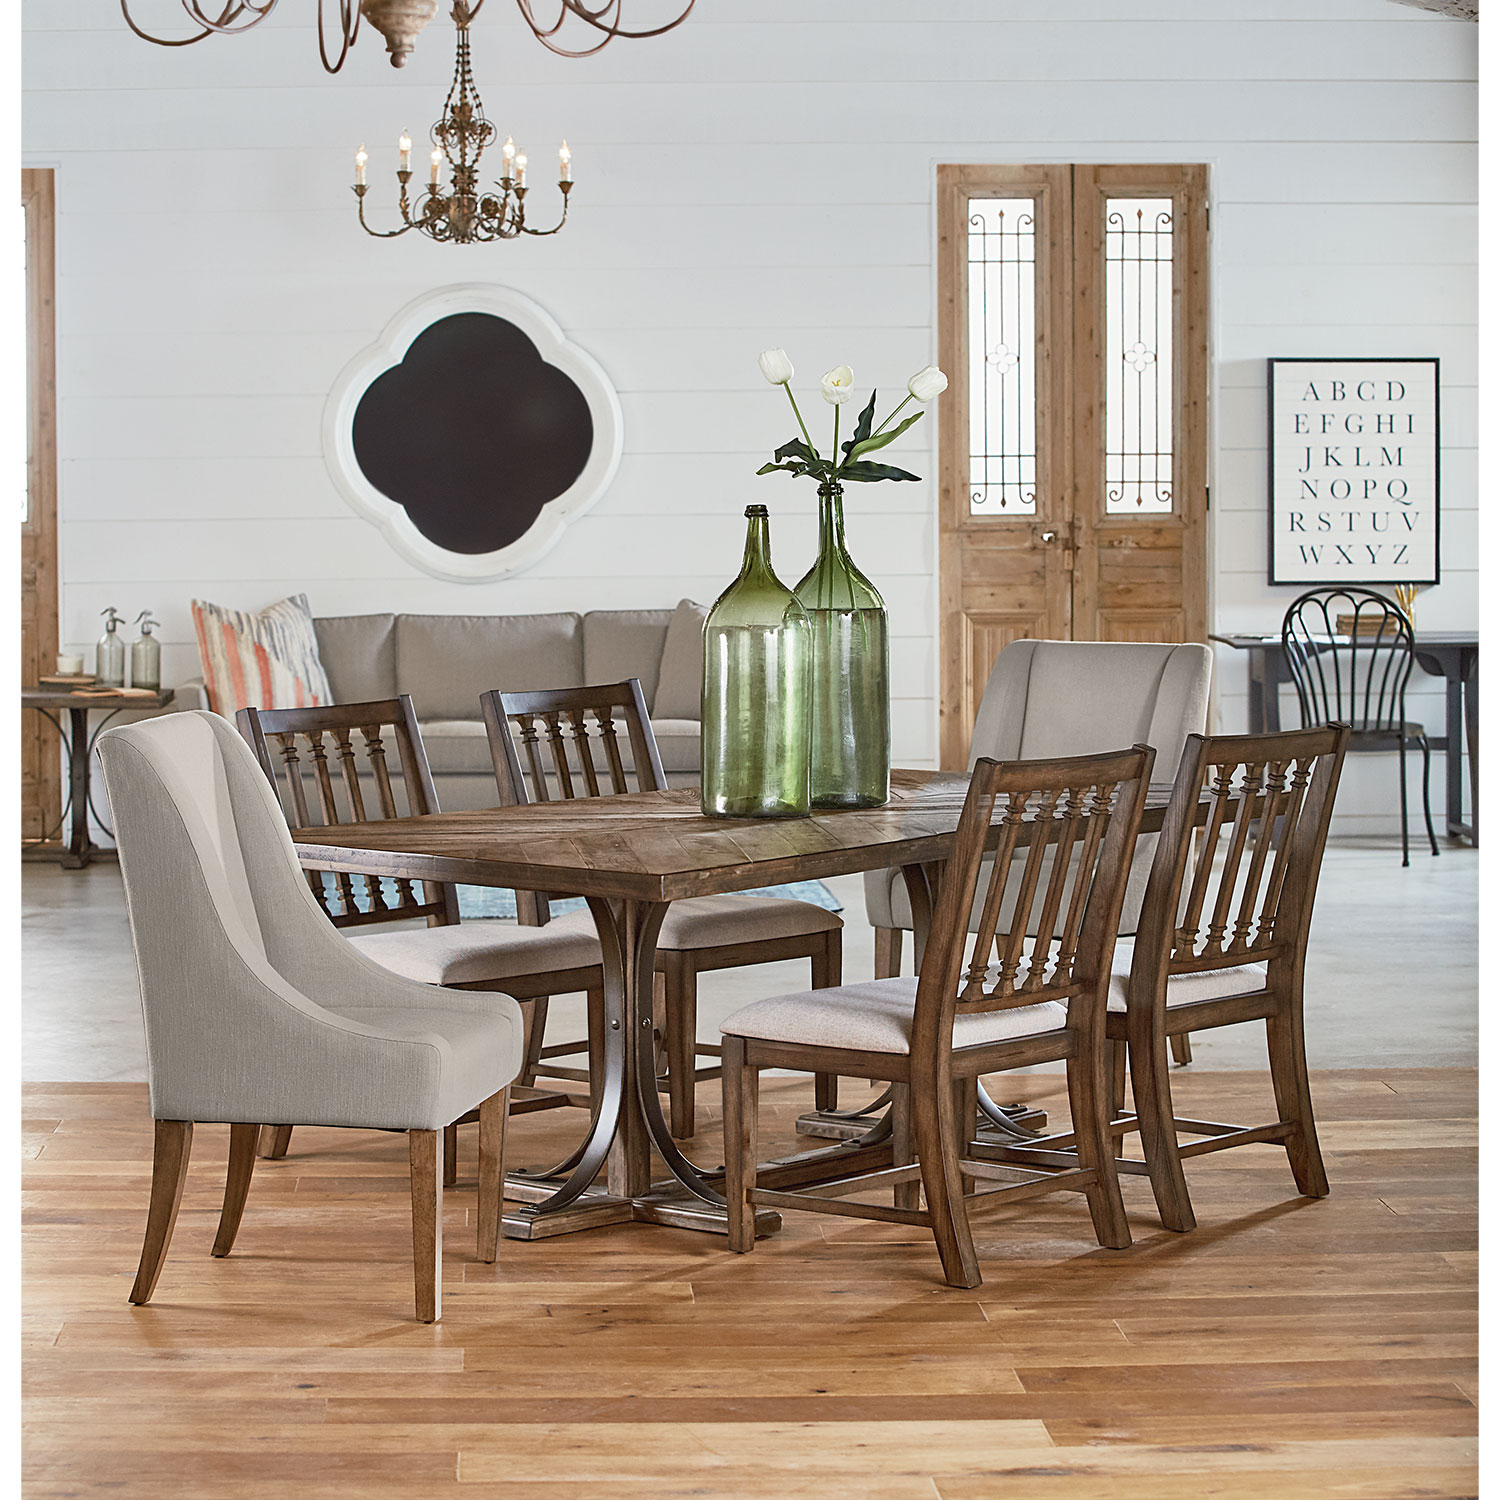 Dining Room Furniture - Traditional Iron Trestle Table, Two Demi-Wing Upholstered Chairs, and Four Revival Side Chairs